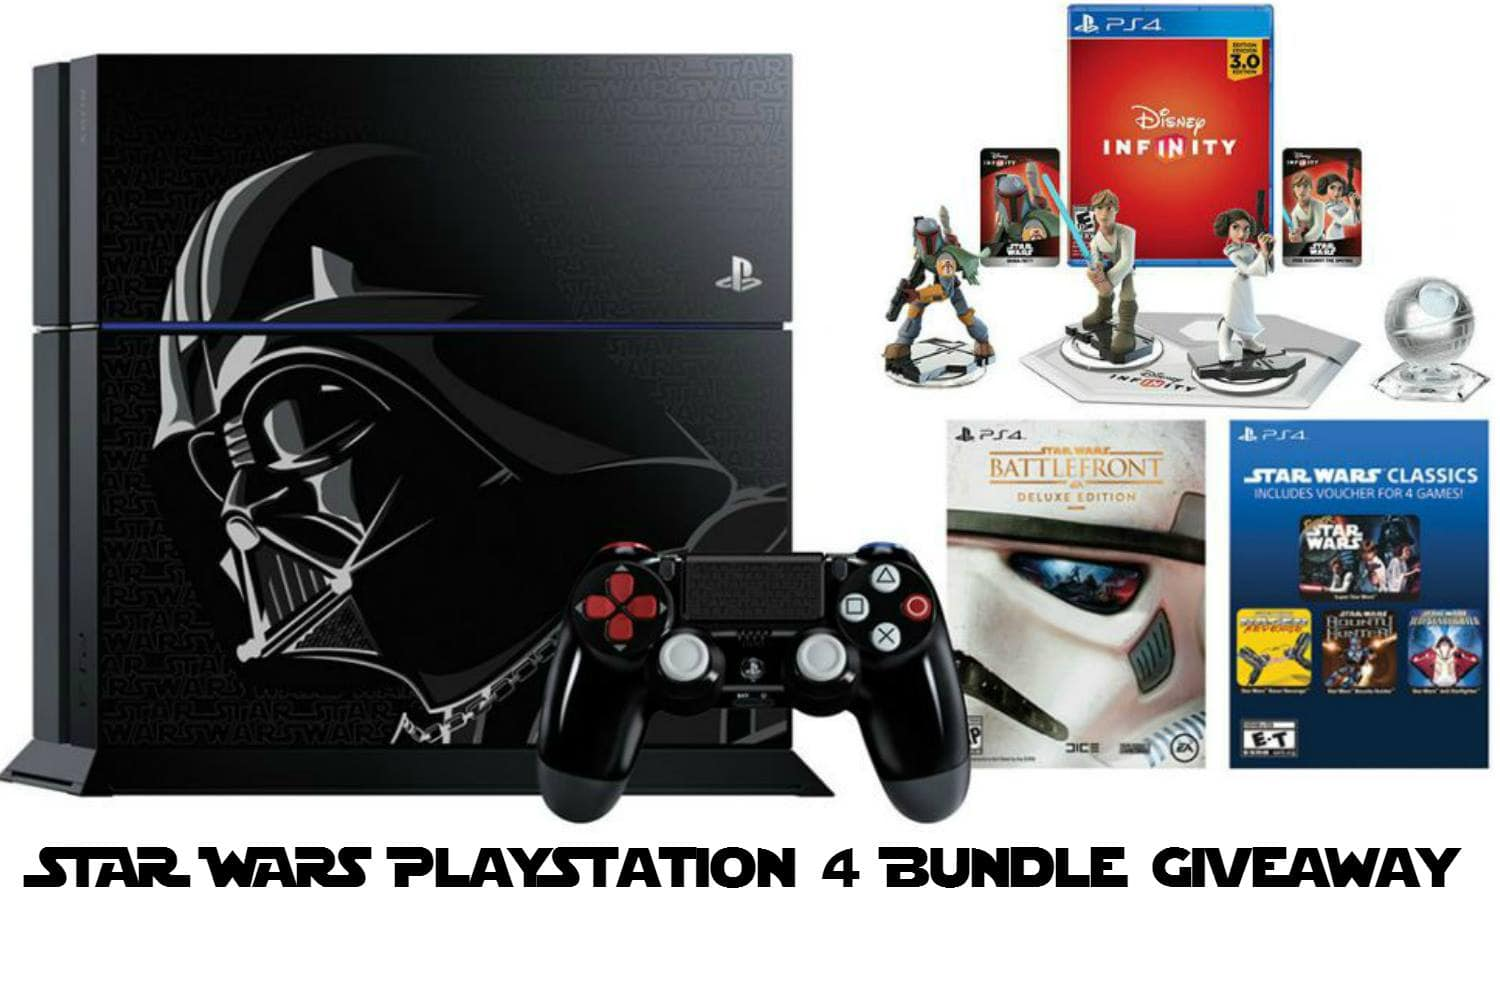 Limited Edition Star Wars PS4 Giveaway – SECOND CHANCE